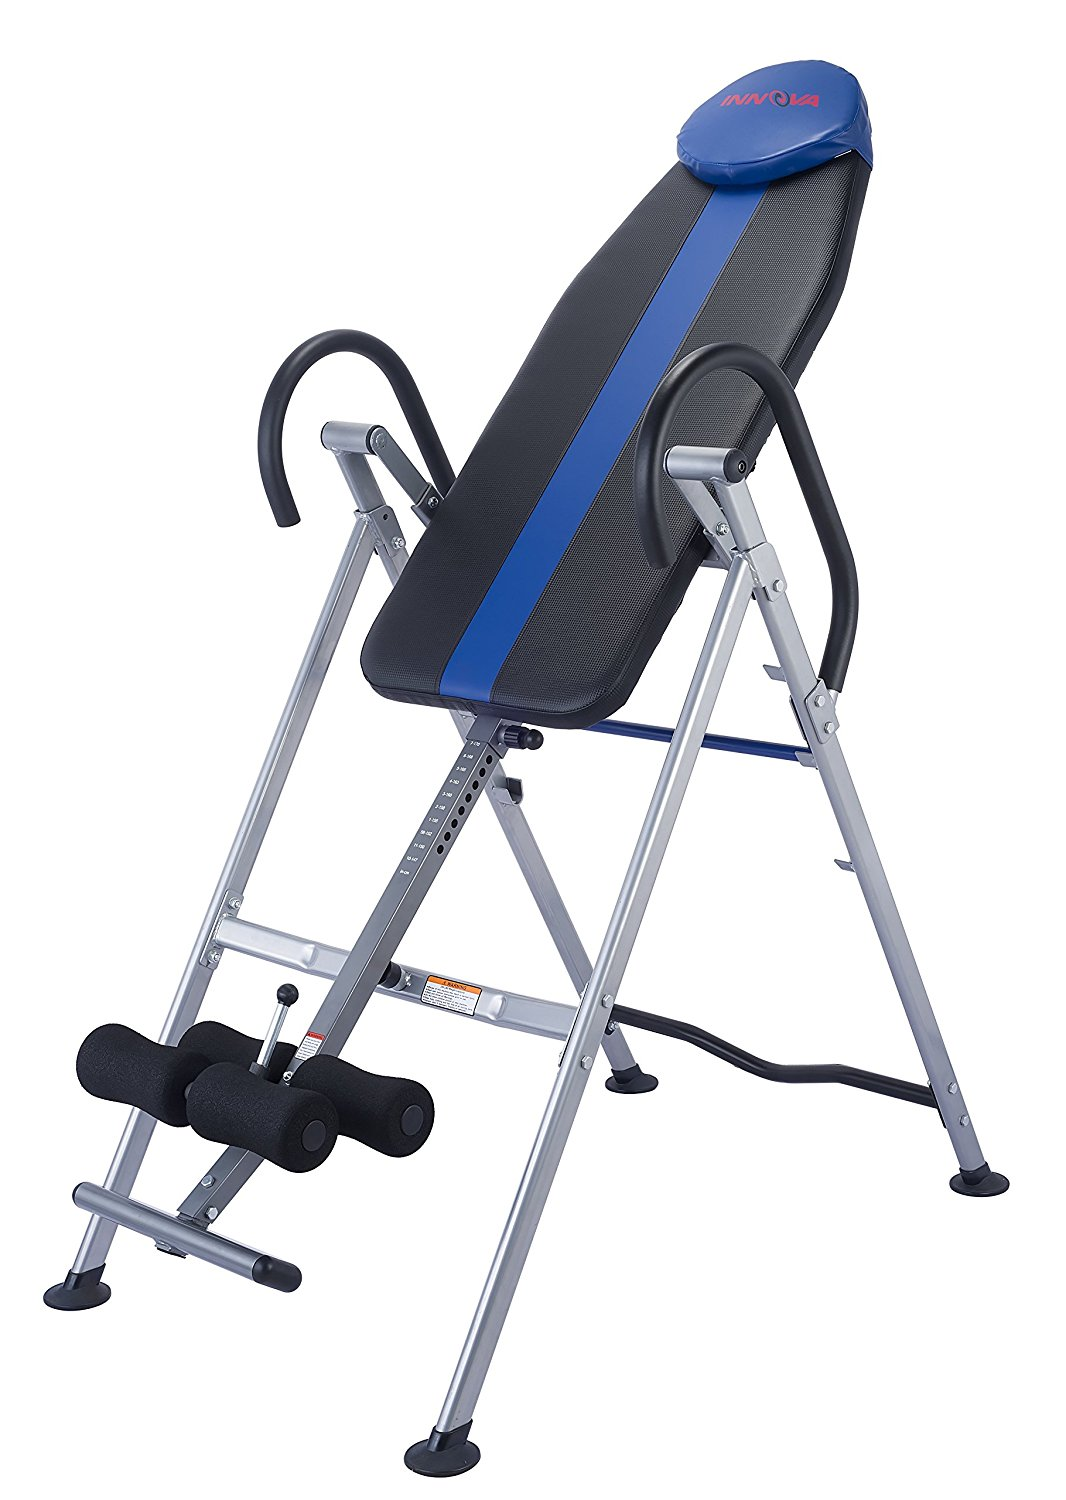 Innova Elite Fitness Inversion Table Review